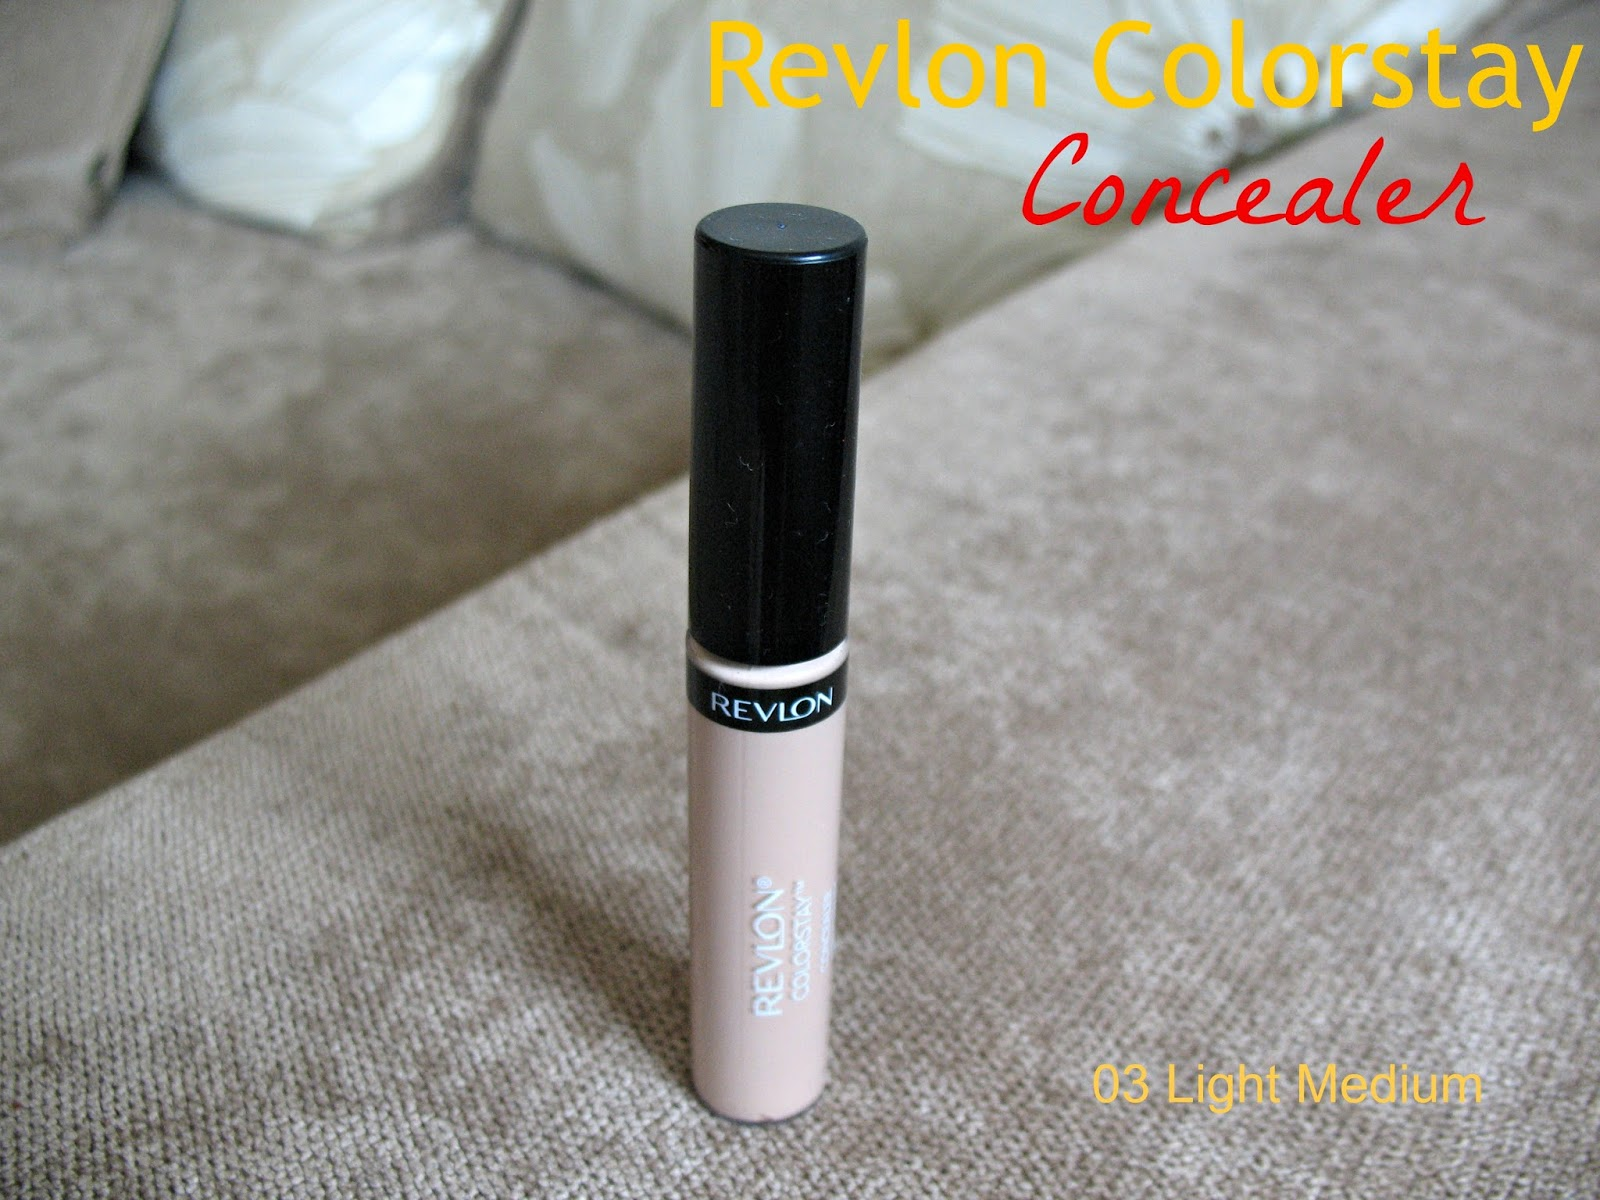 Revlon Colorstay Concealer - shade 03 light medium